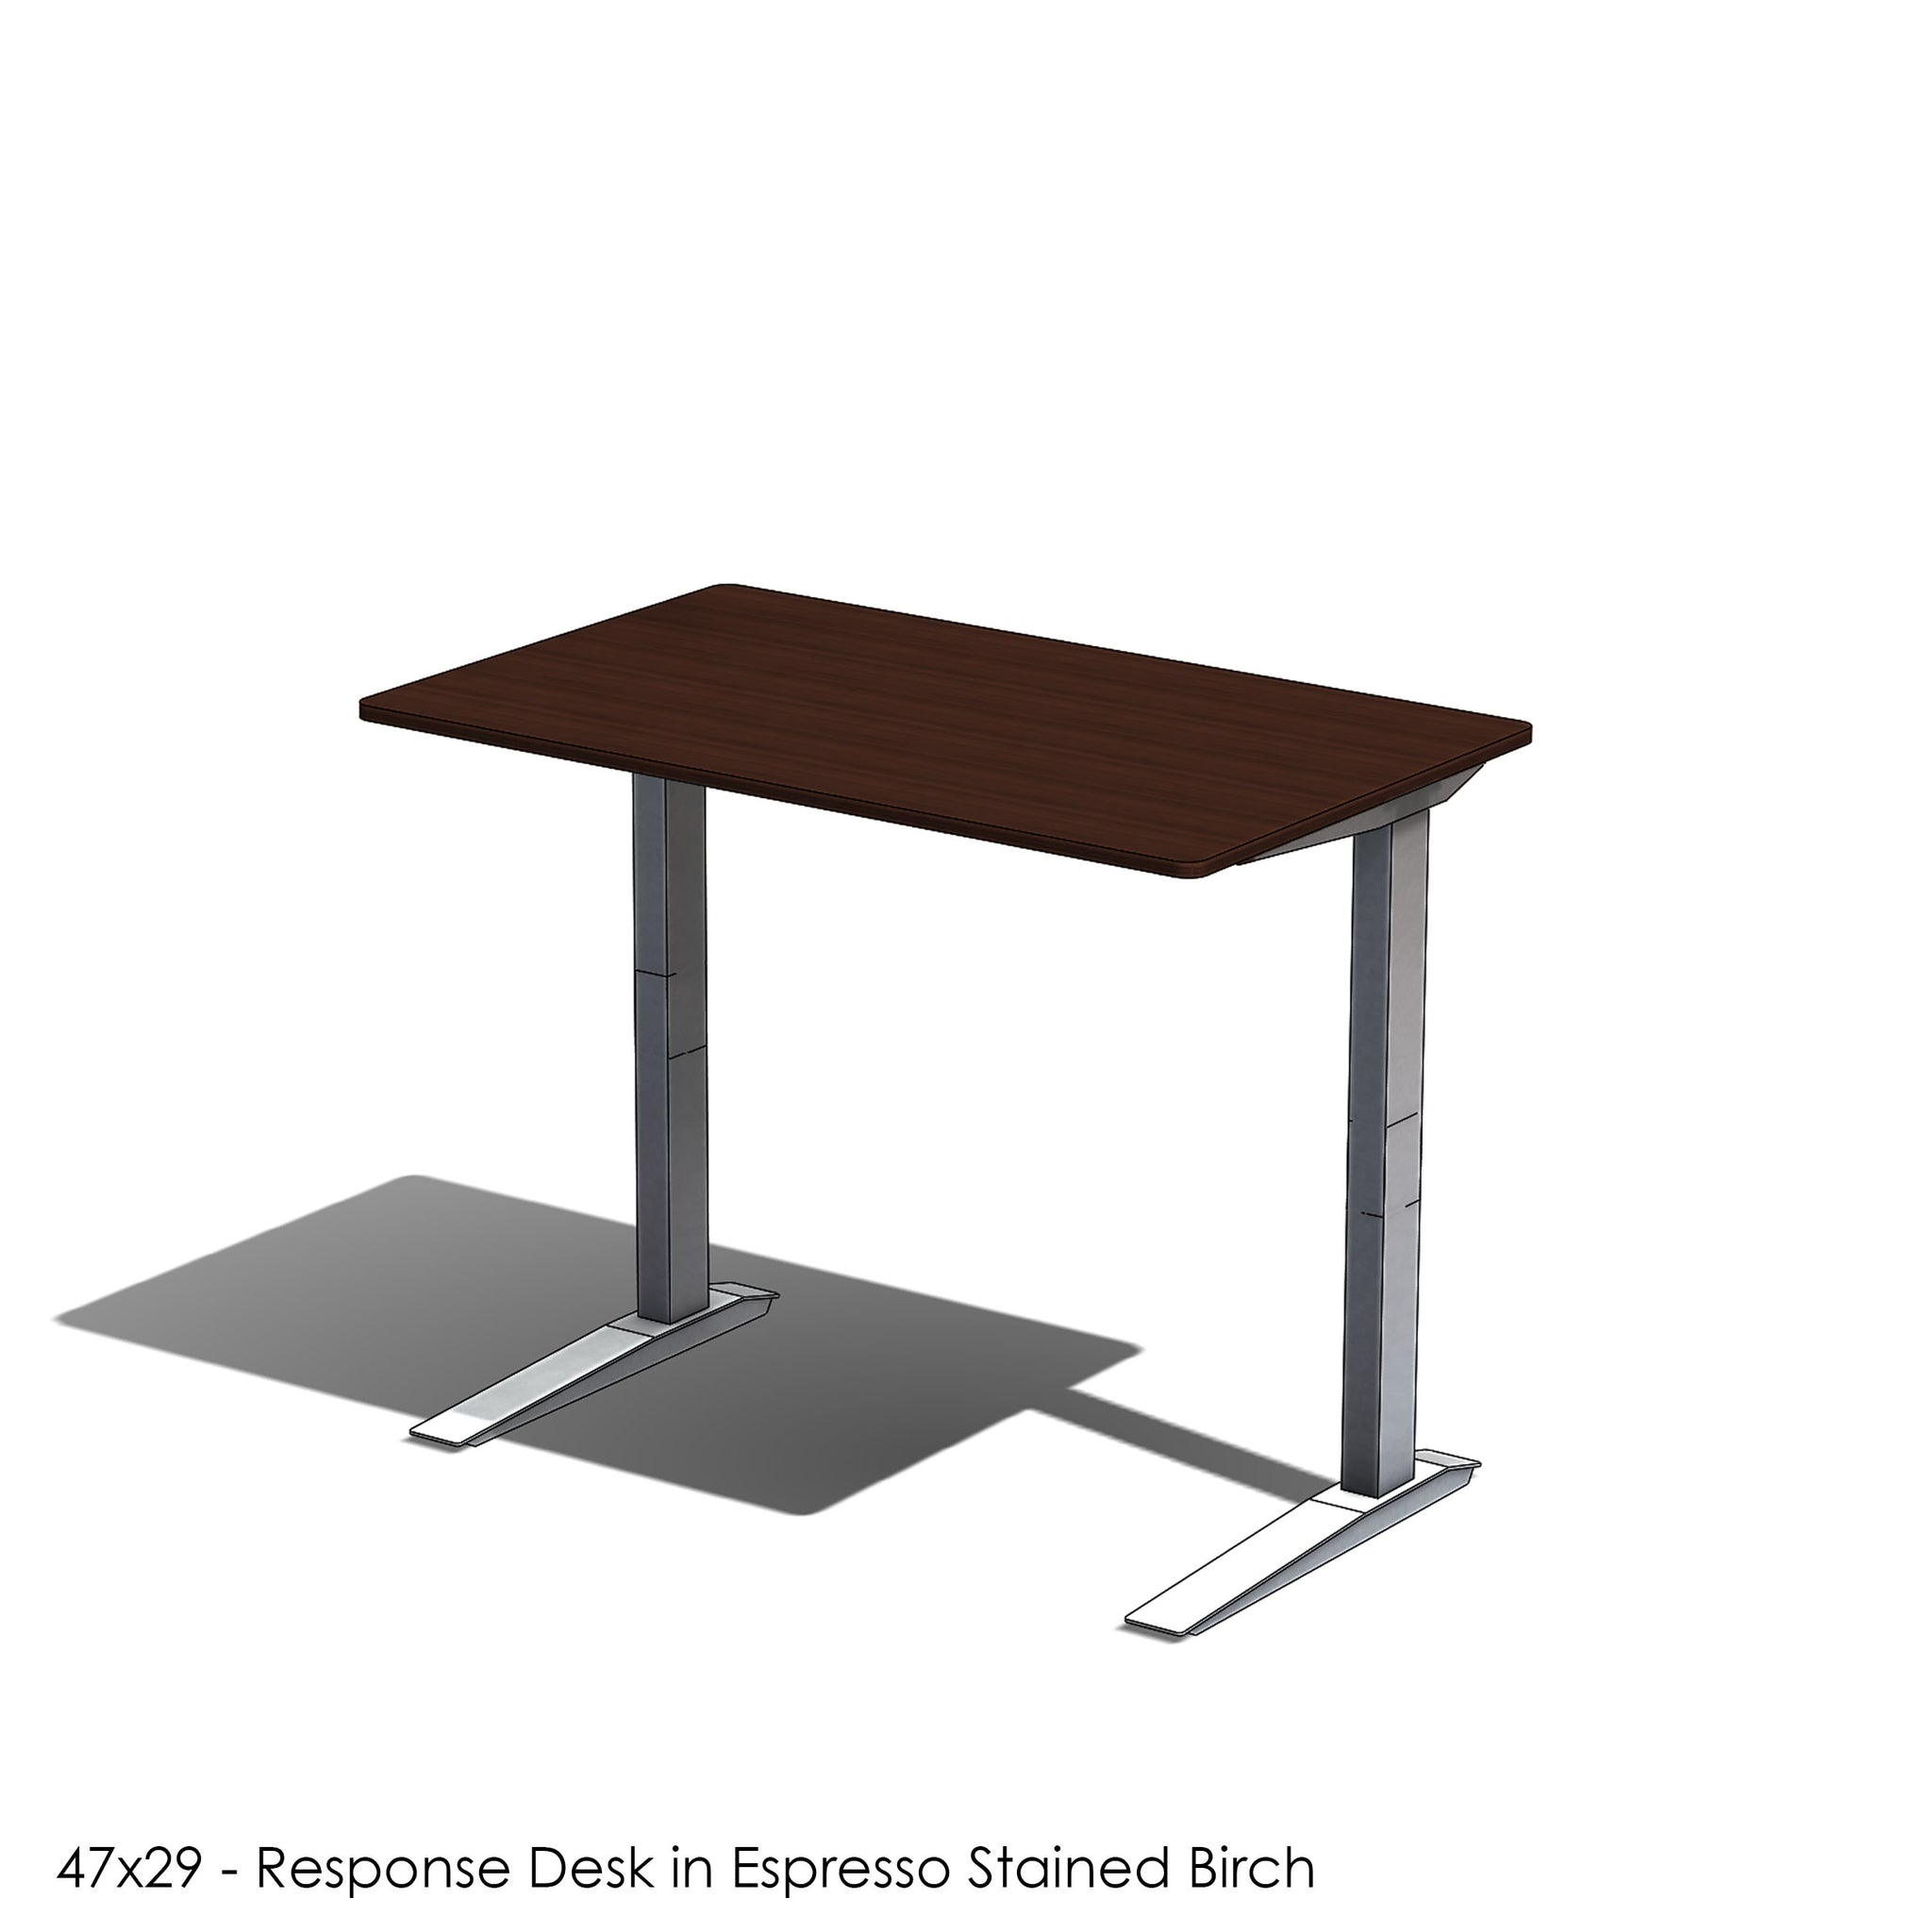 Response Desk - Baltic Birch Slab Desk made in the color of your choice - Short Lead Time Adjustable Home Office Desk with Jarvis Desk Base